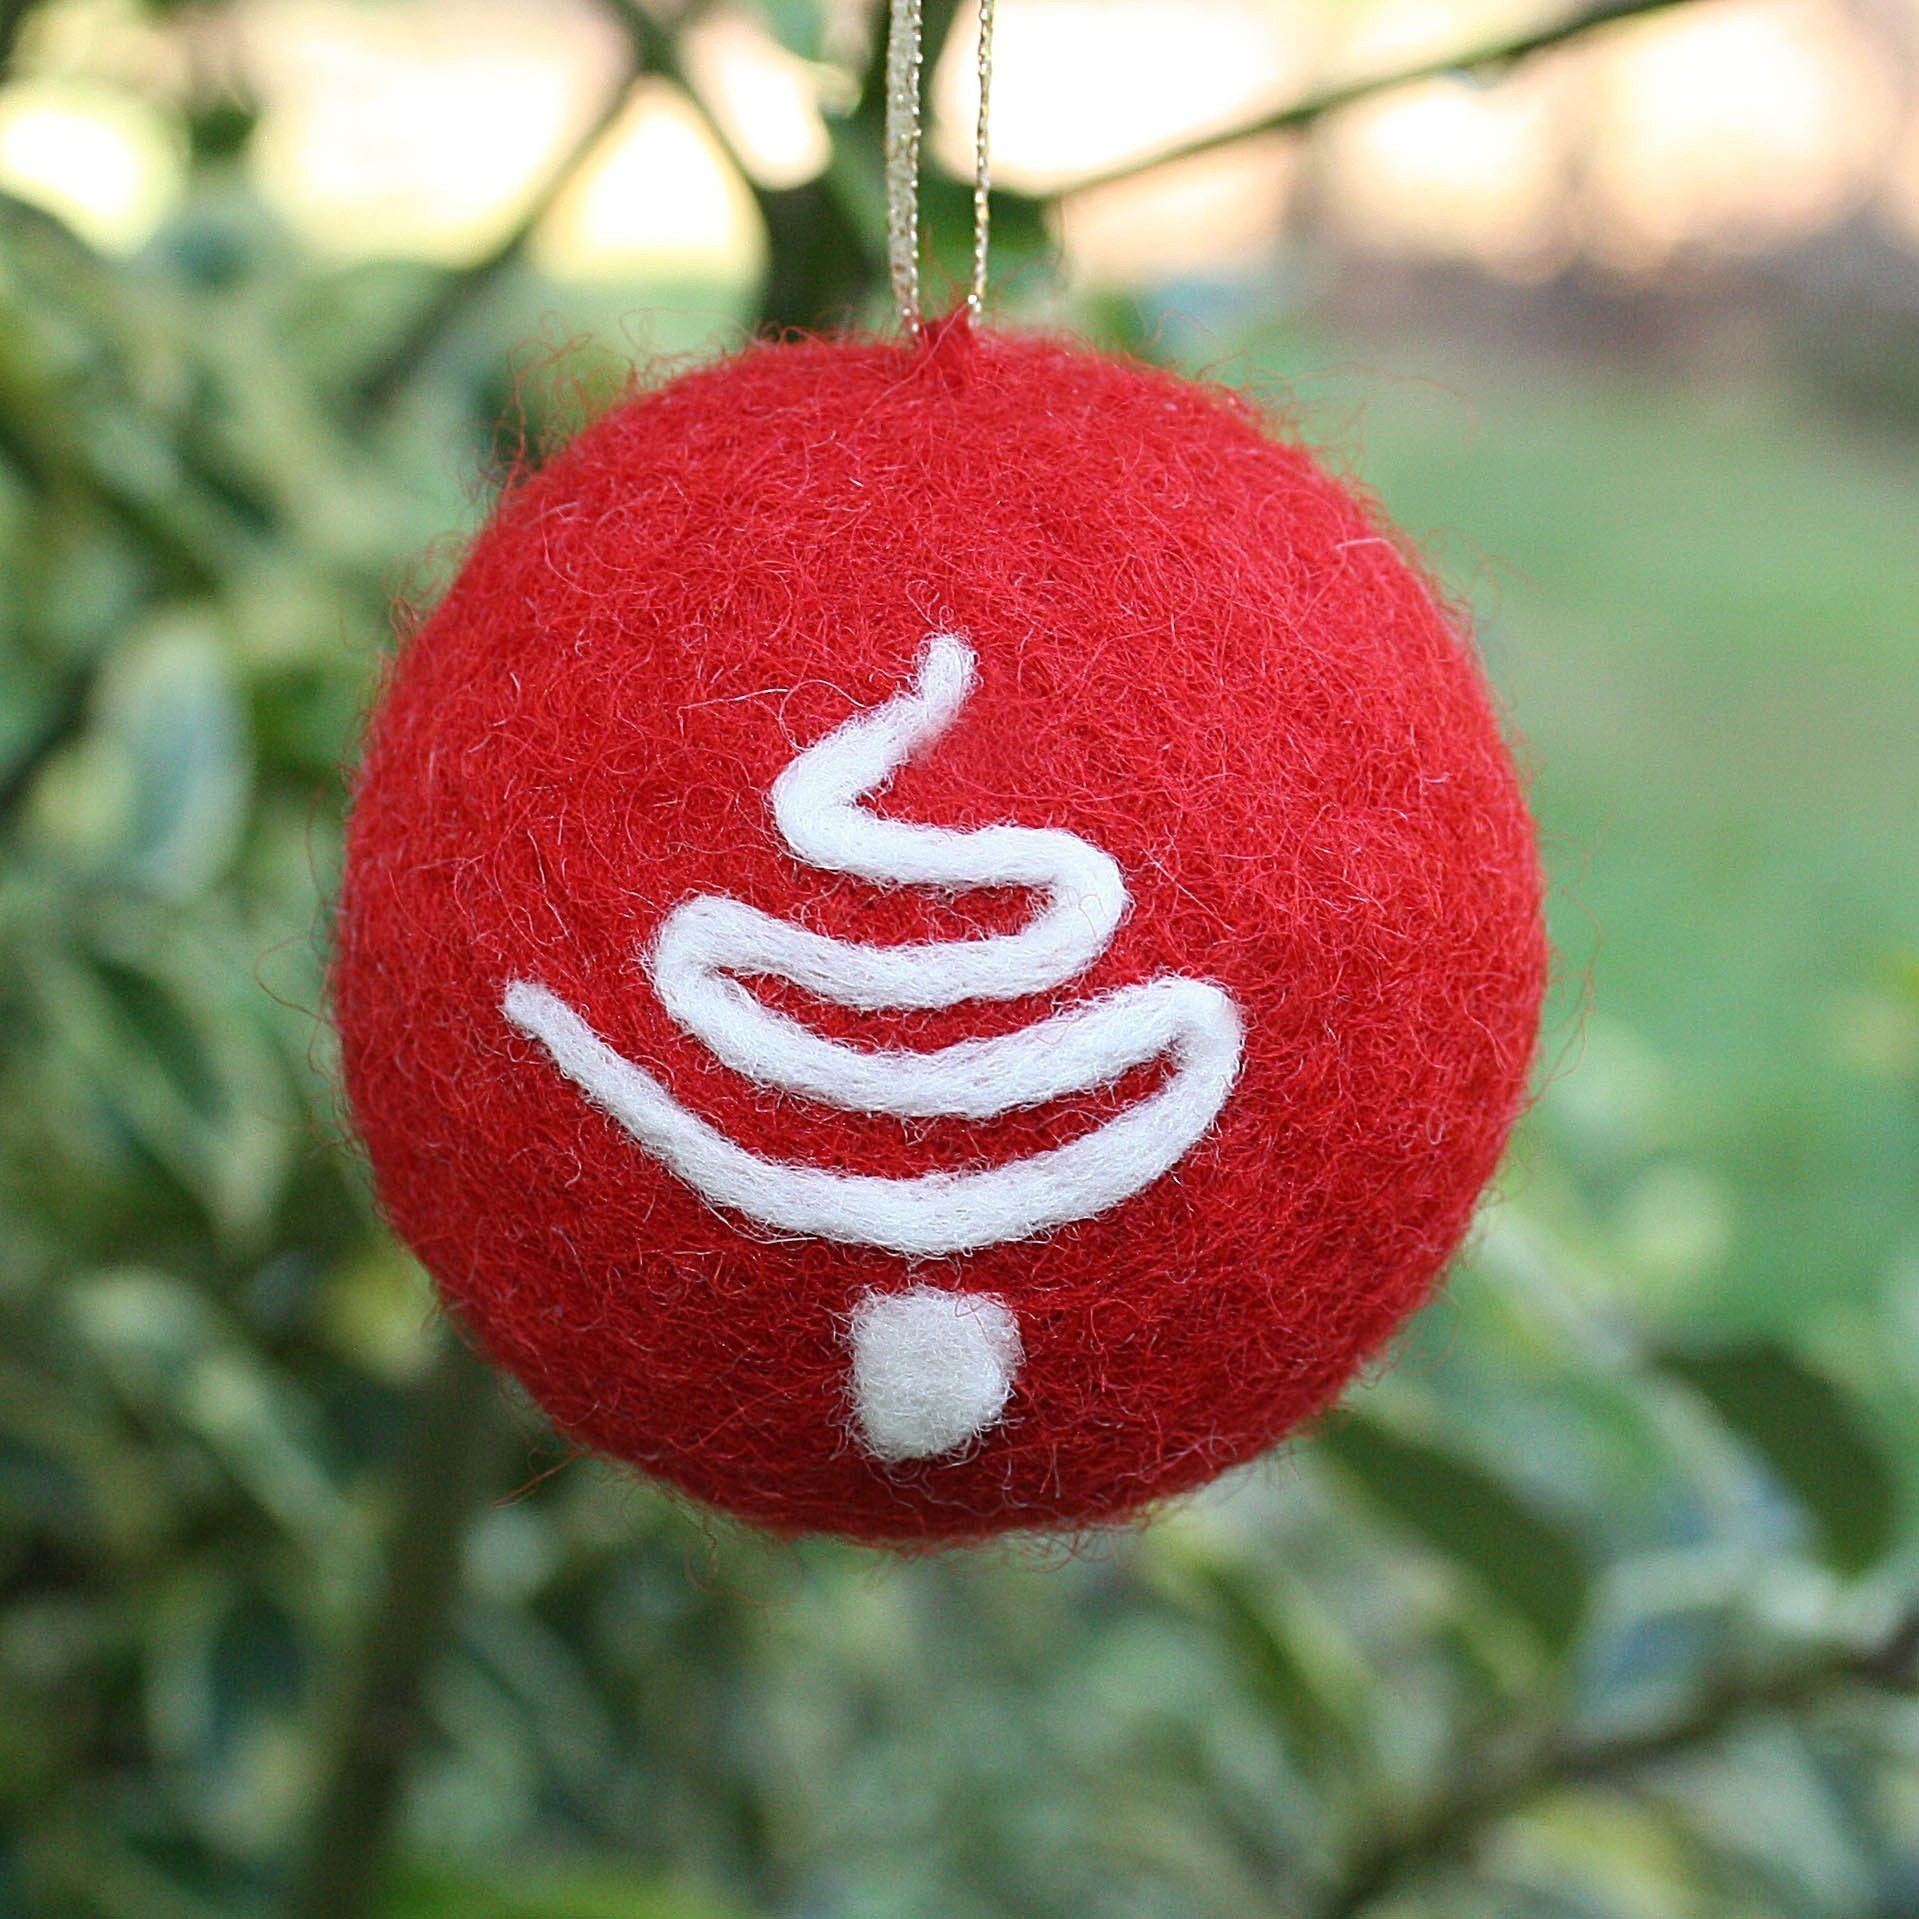 Bicycle Christmas Tree Decorations Ornaments: Needle Felted Christmas Ornament With Tree Detail Free